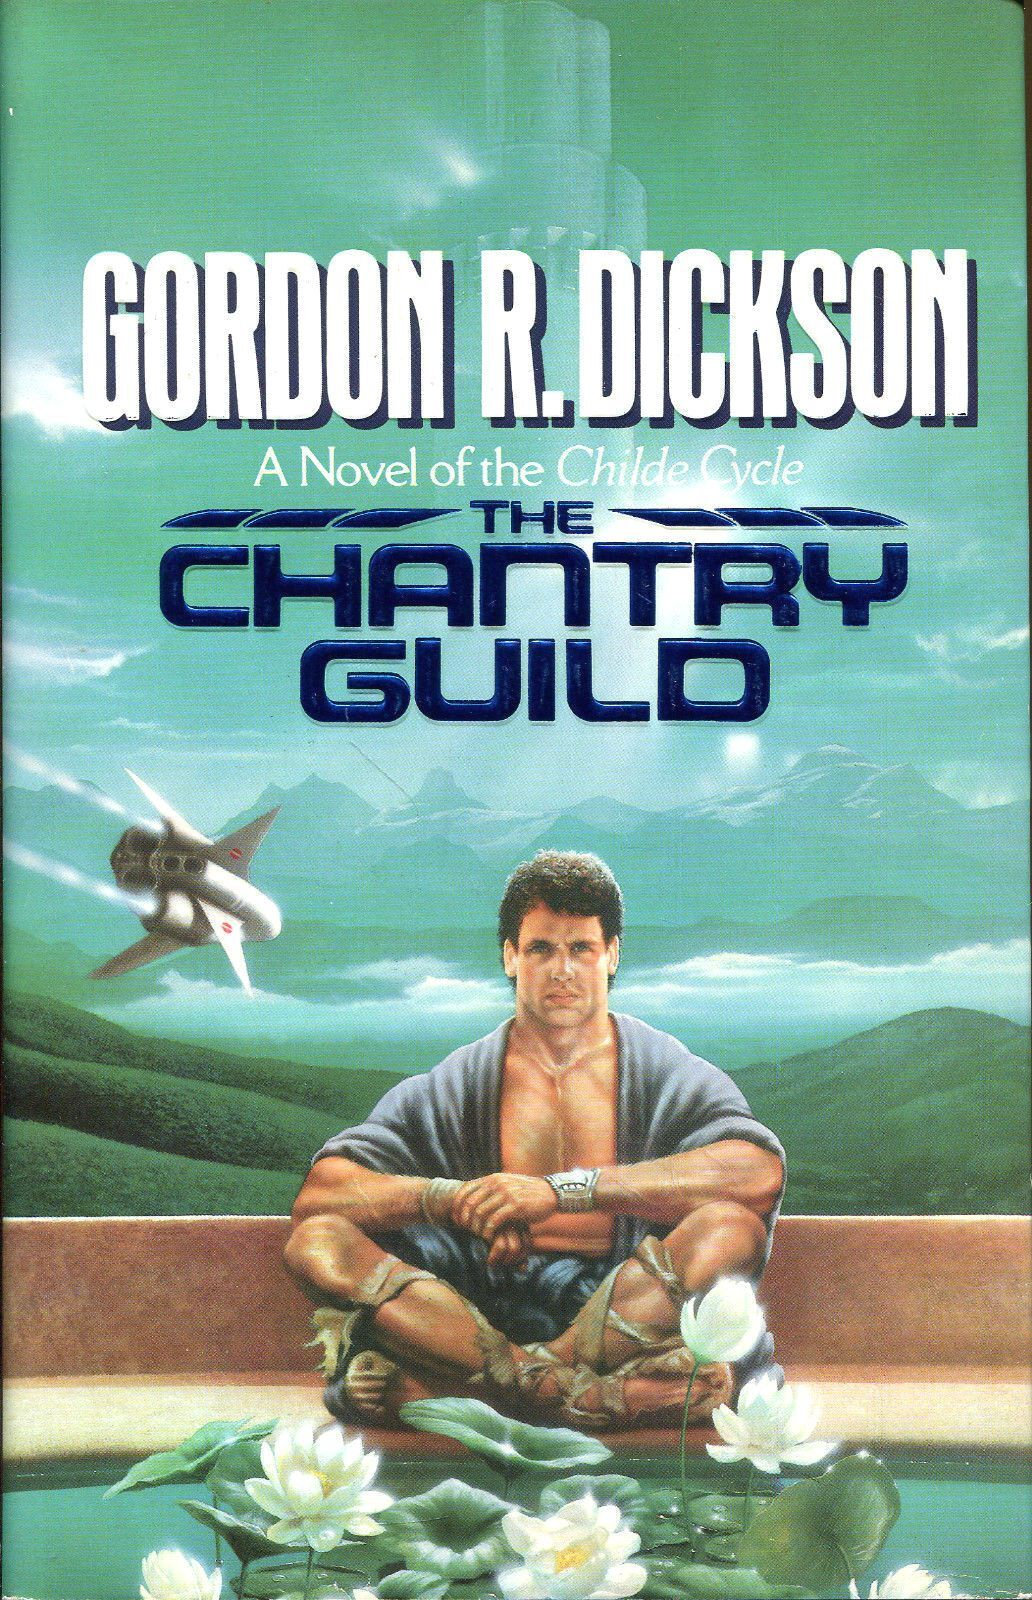 Details about GORDON DICKSON THE CHANTRY GUILD HARDCOVER OCT 1988 1ST  EDITION NF/FINE RARE OOP